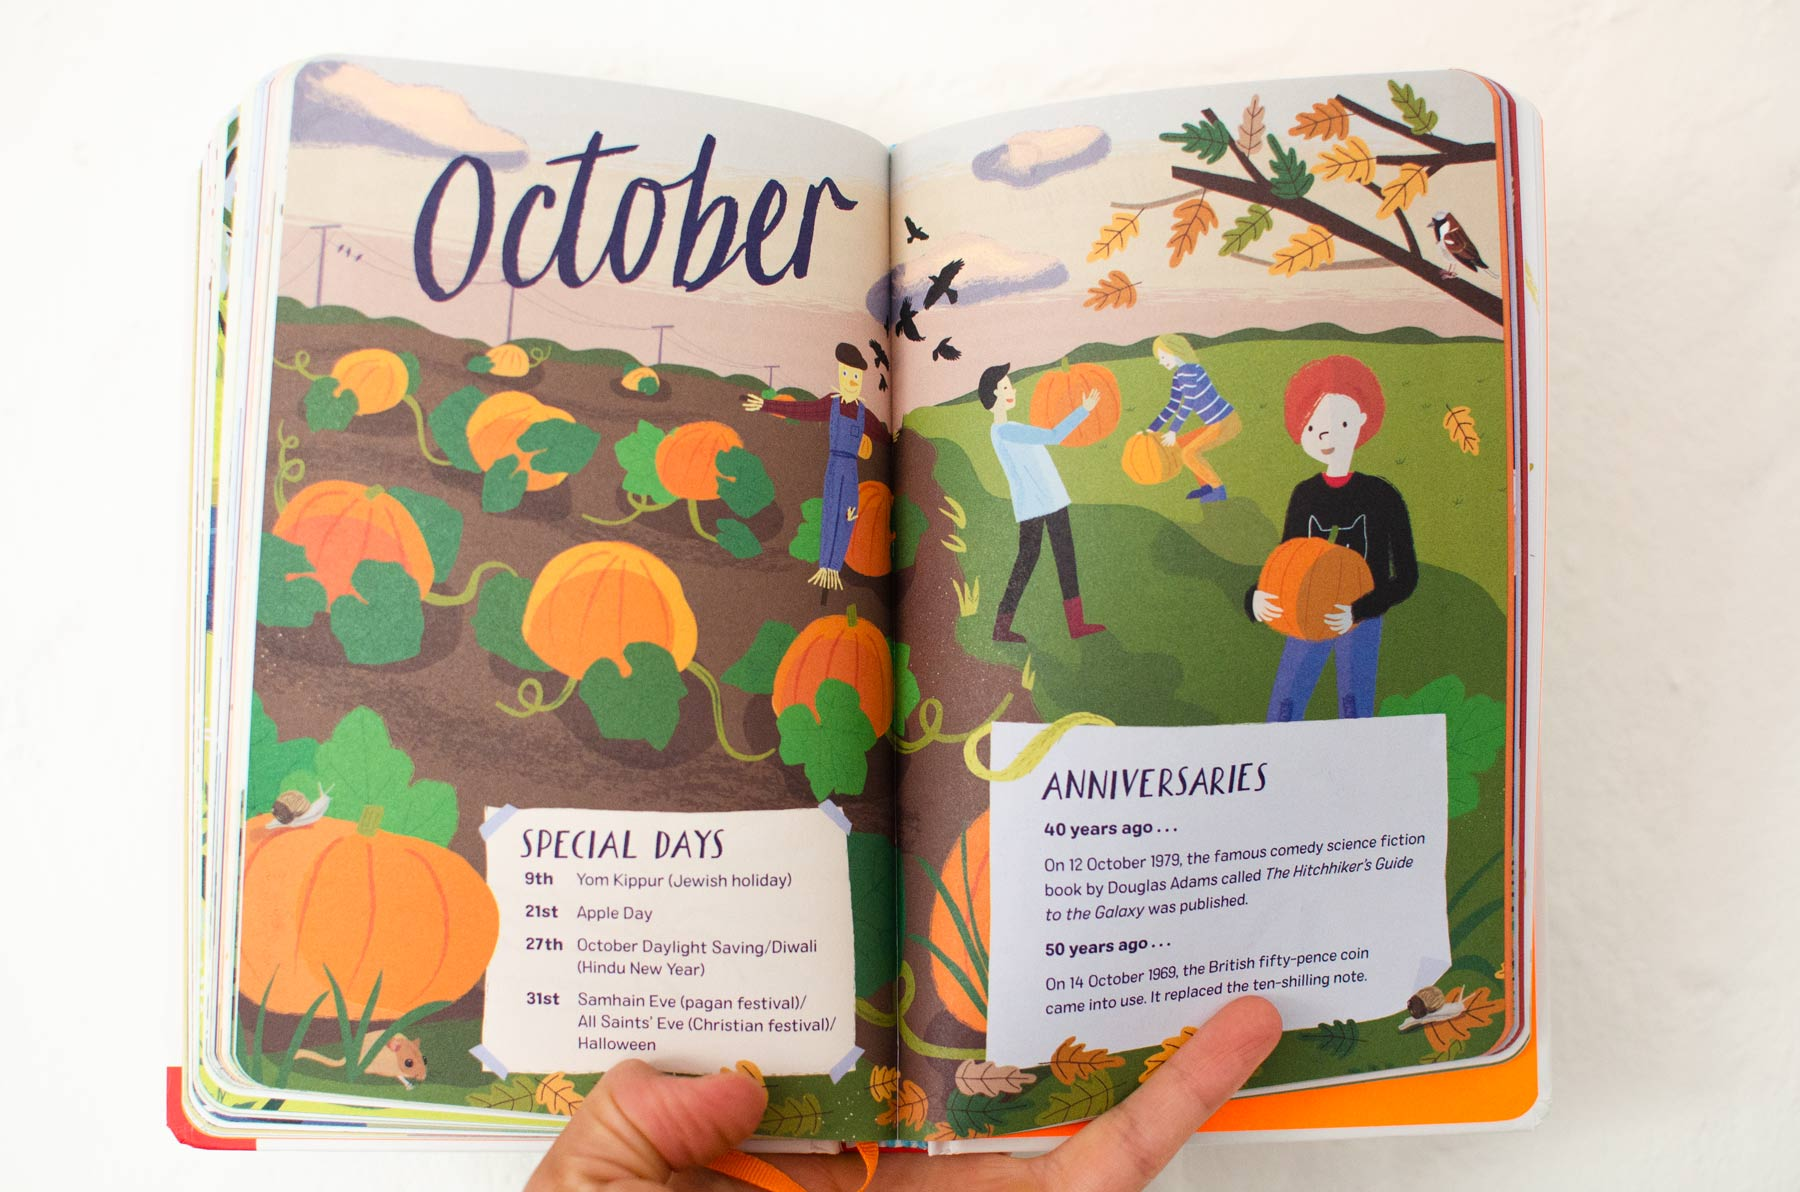 Double page spread from 2019: Nature Month by Month illustrated by Elly Jahnz.